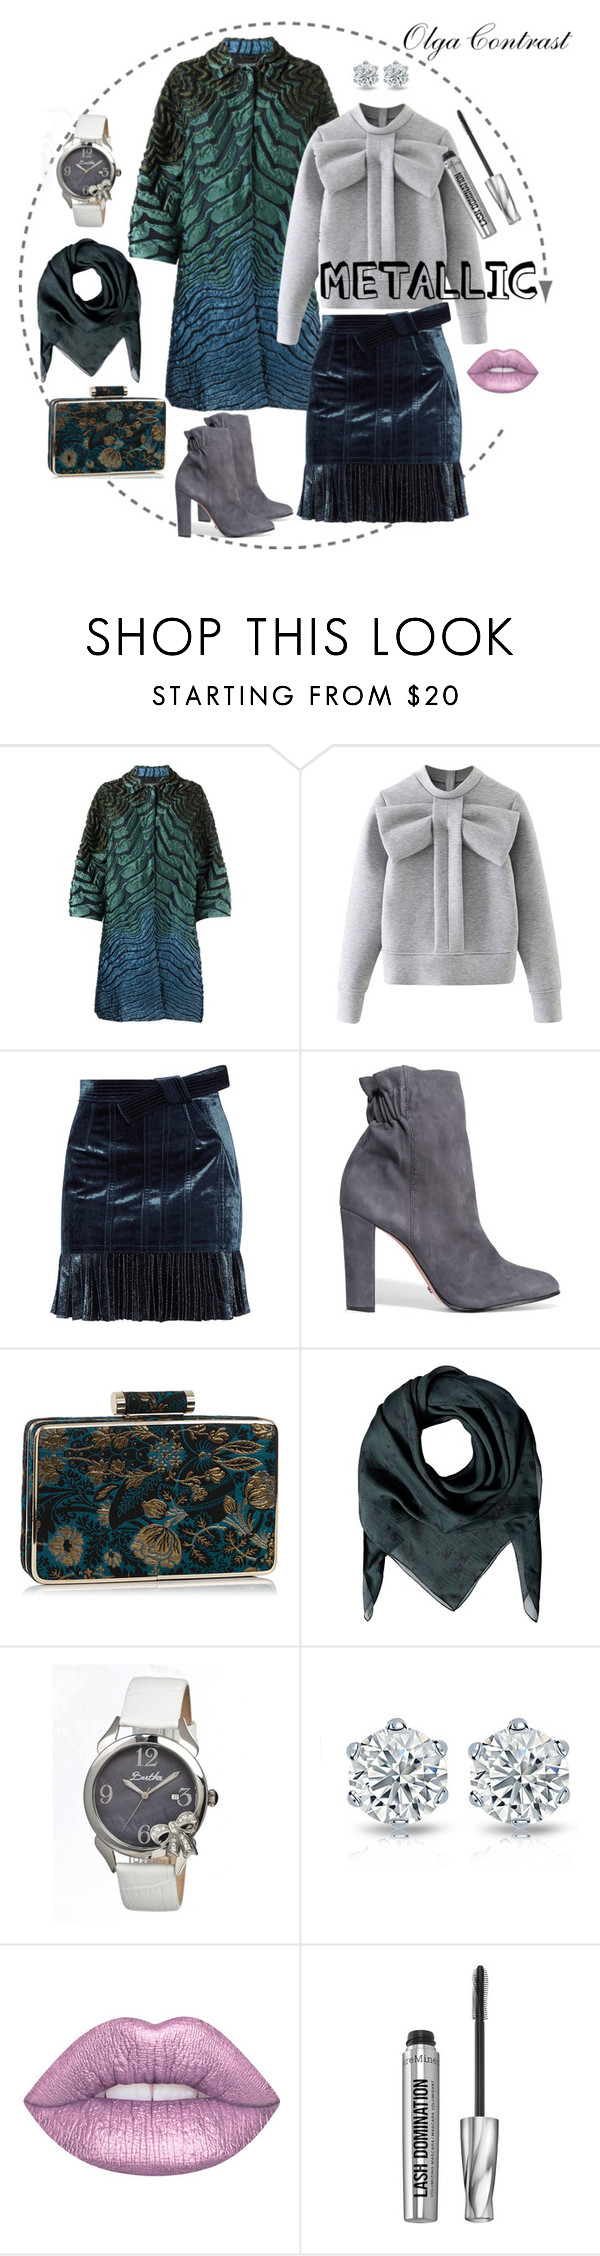 """14.11.2016"" by olgacontrast on Polyvore featuring мода, Alberta Ferretti, WithChic, 3.1 Phillip Lim, Schutz, The Kooples, Bertha и Bare Escentuals"